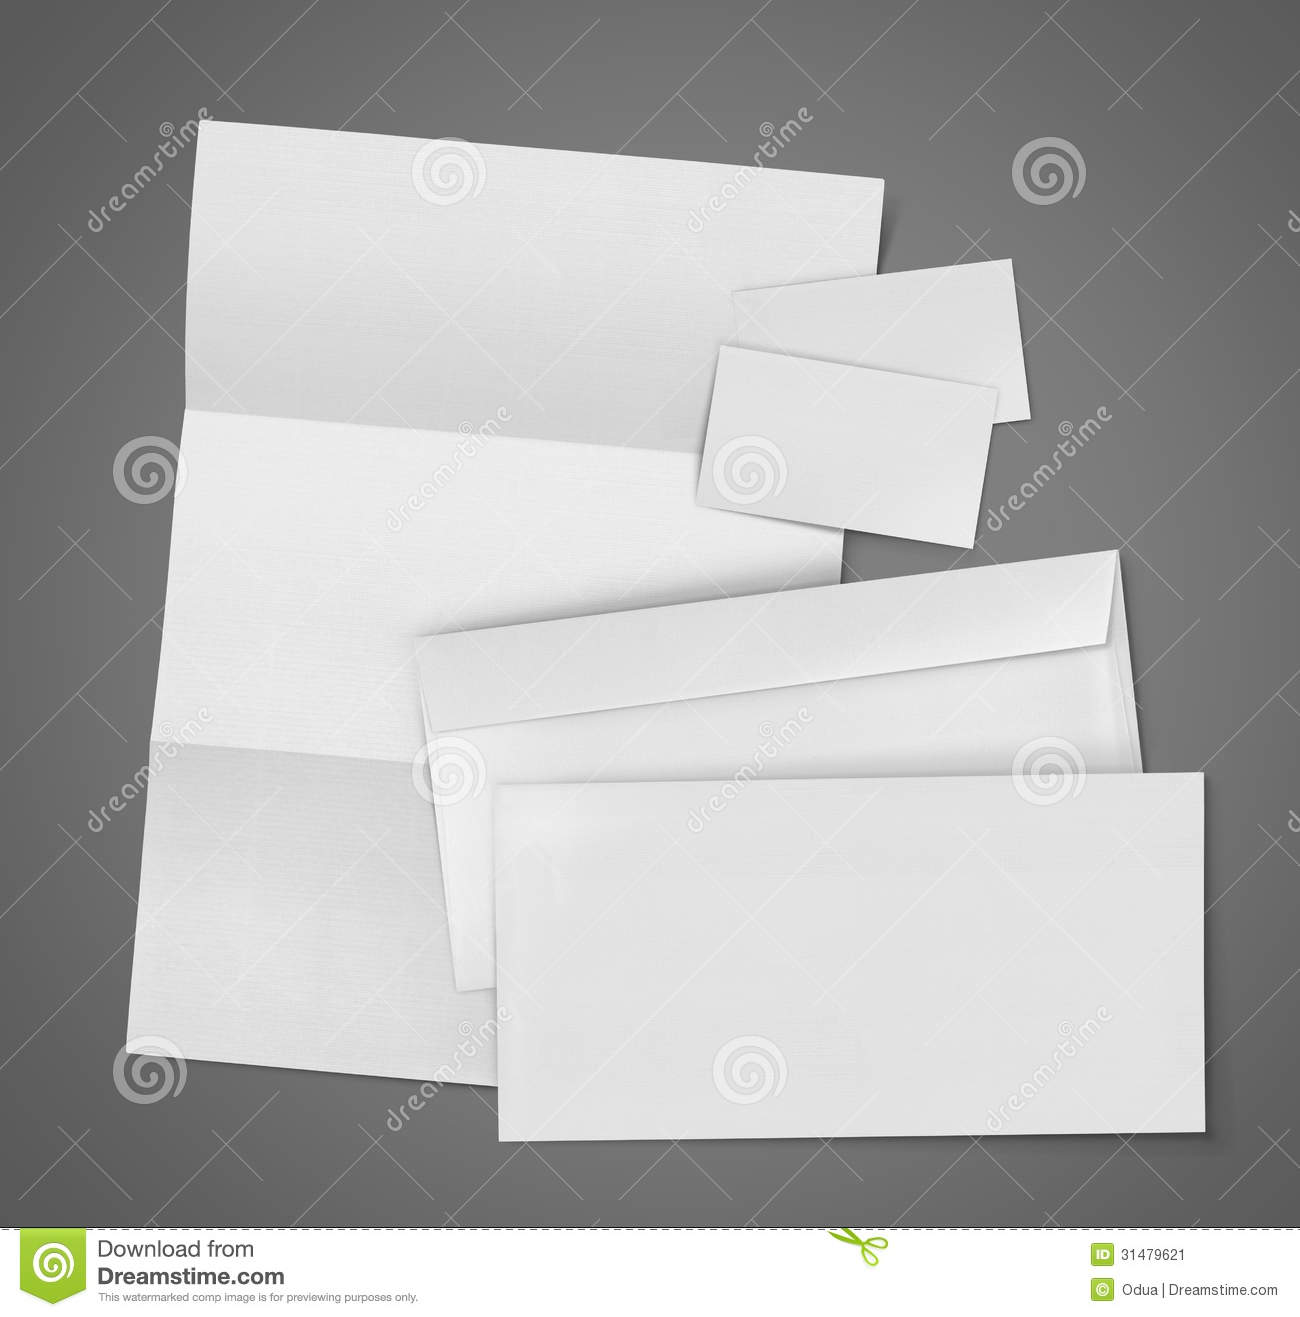 Blank Stationery And Corporate Identity Template Consist: Blank Set Stationery Corporate ID Stock Image